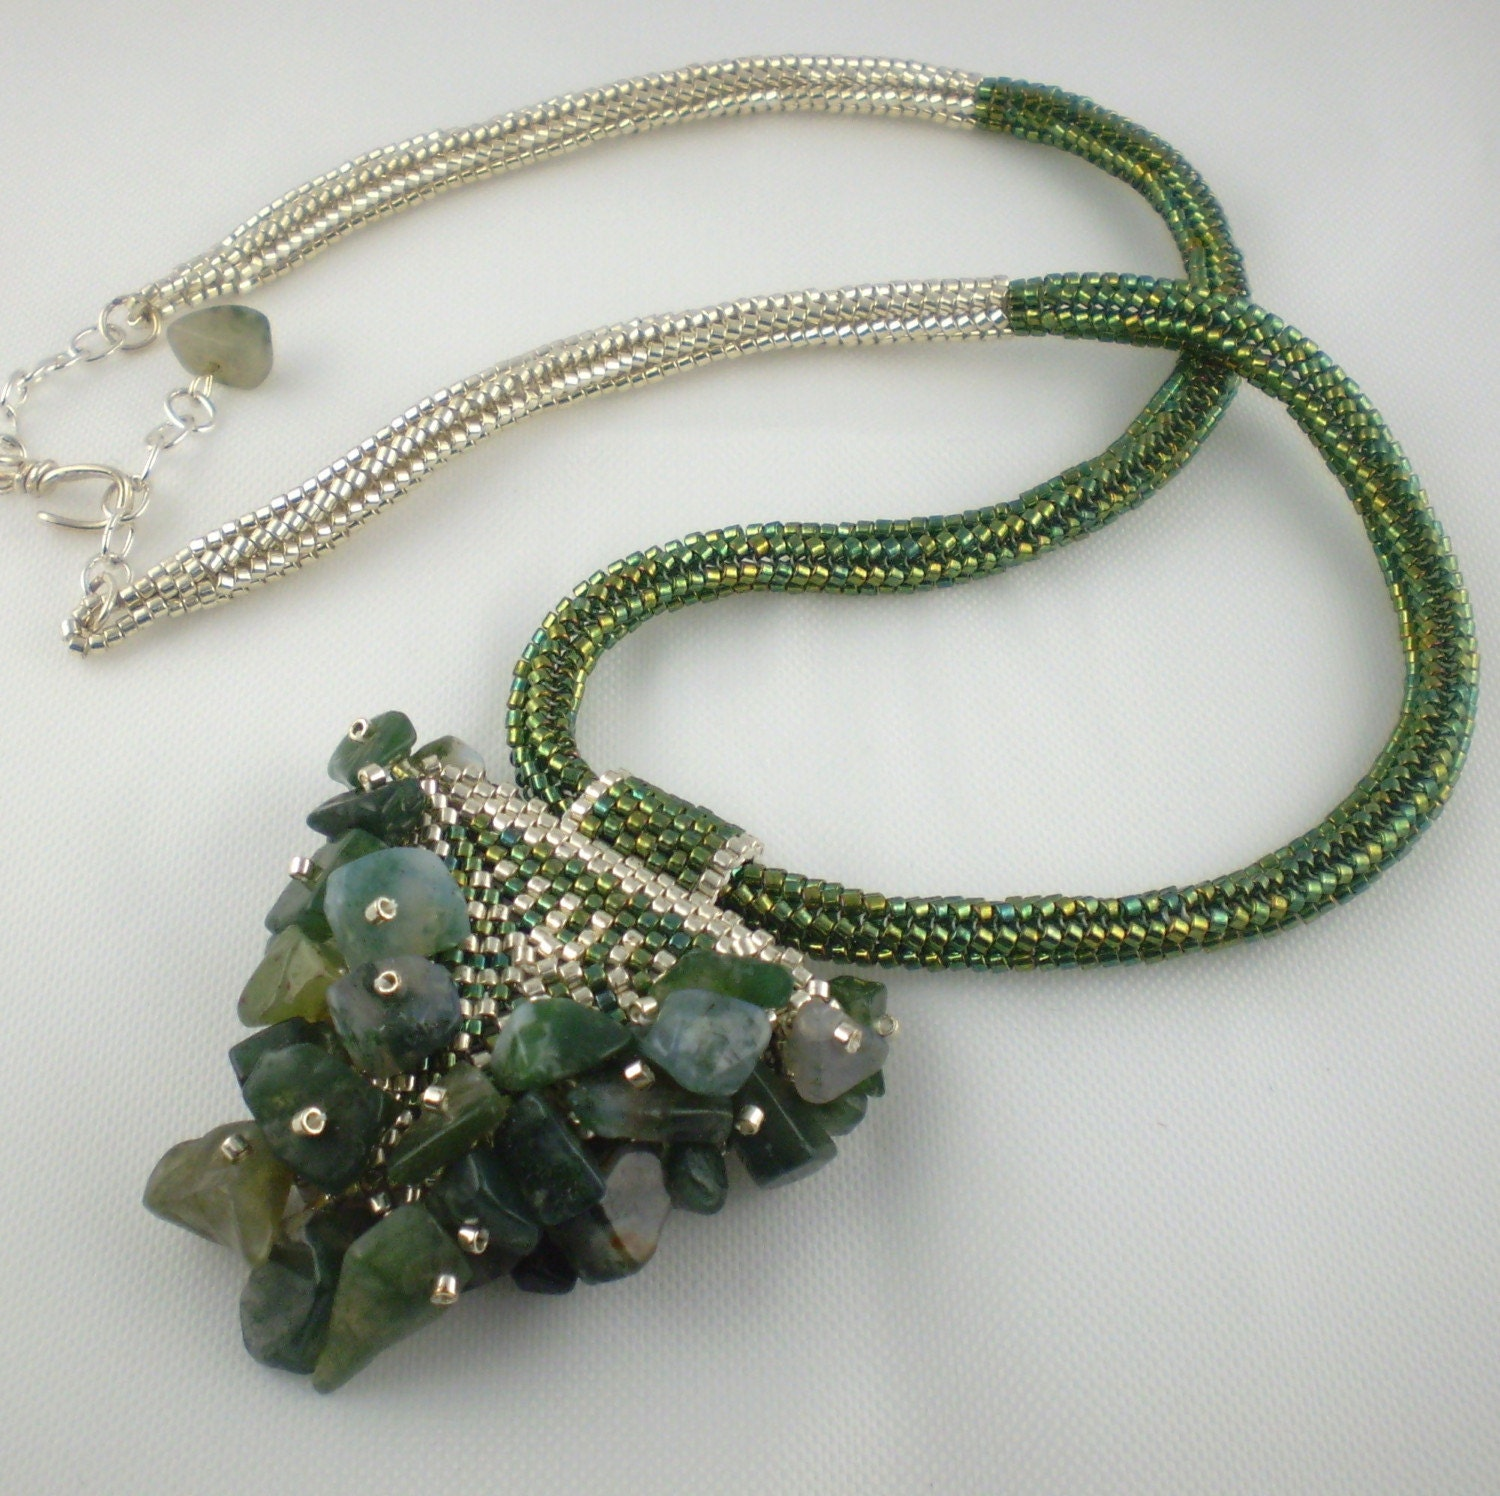 Embellished Green Arrowhead Necklace